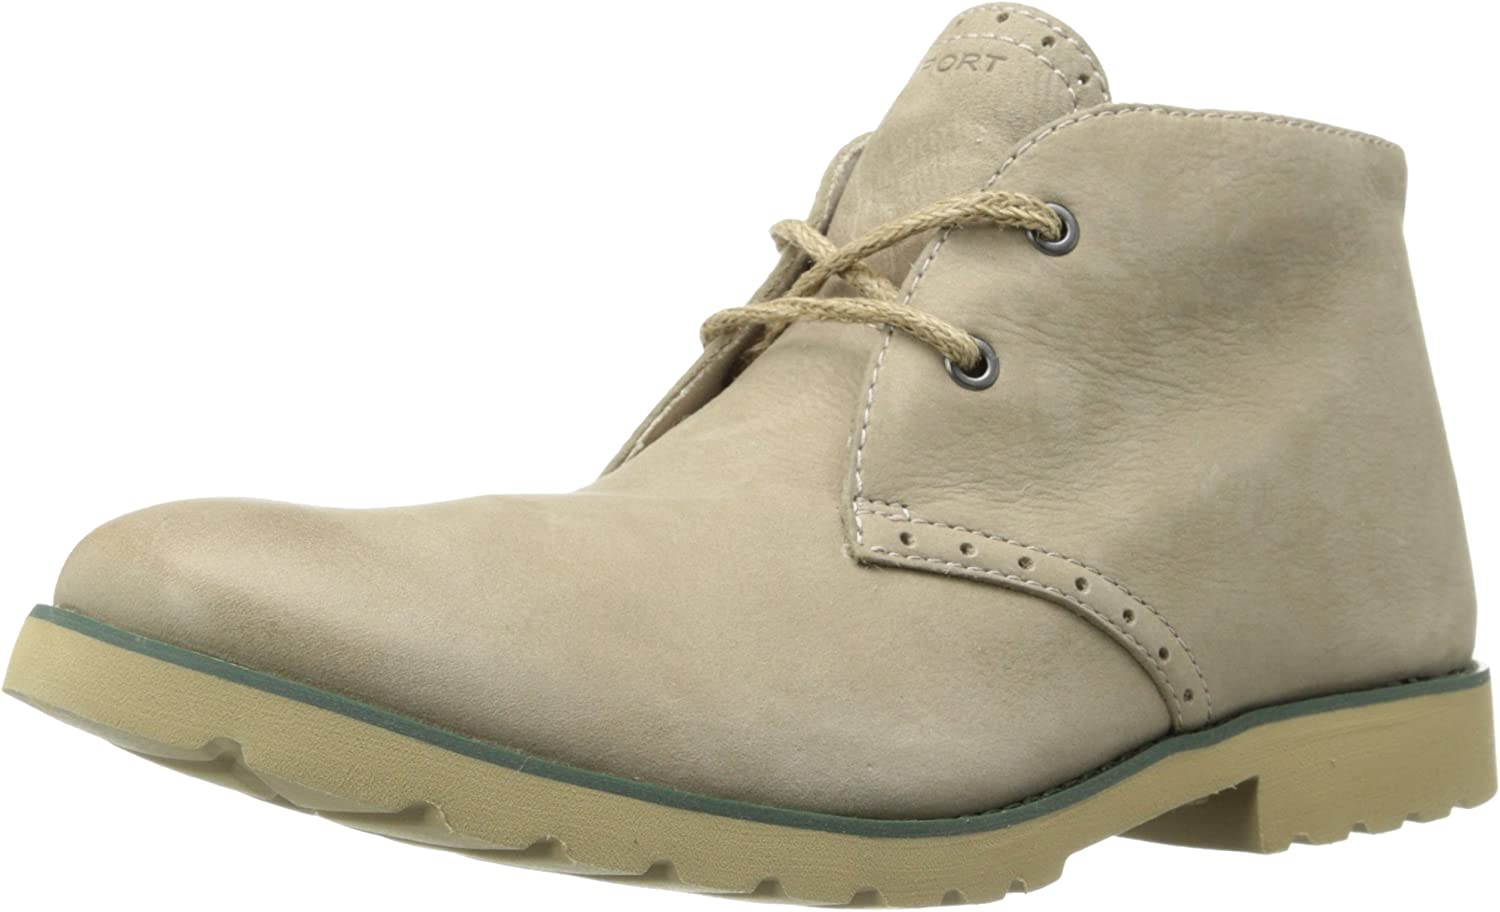 Rockport Men's Ledge Hill Deconstructed Chukka Boot